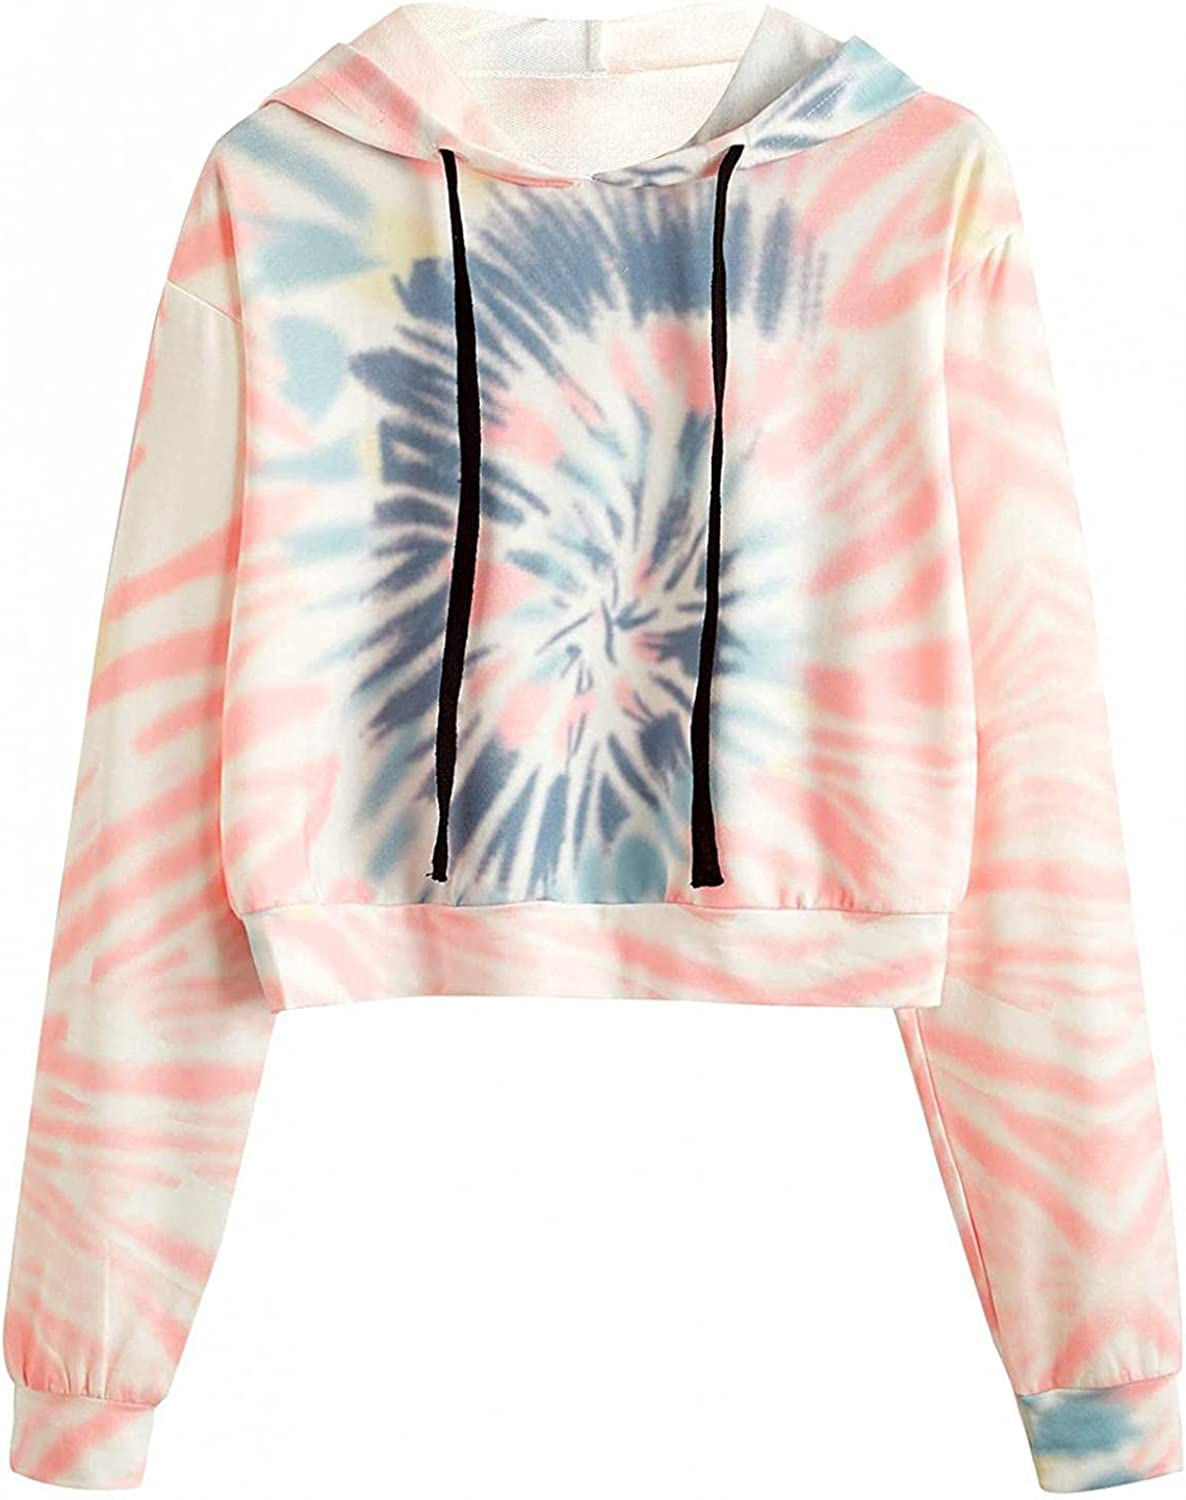 Women Tie Dye Cropped Hoodies Pullover Long Sleeves Sweatshirts Casual Crop Tops for Spring Autumn Winter